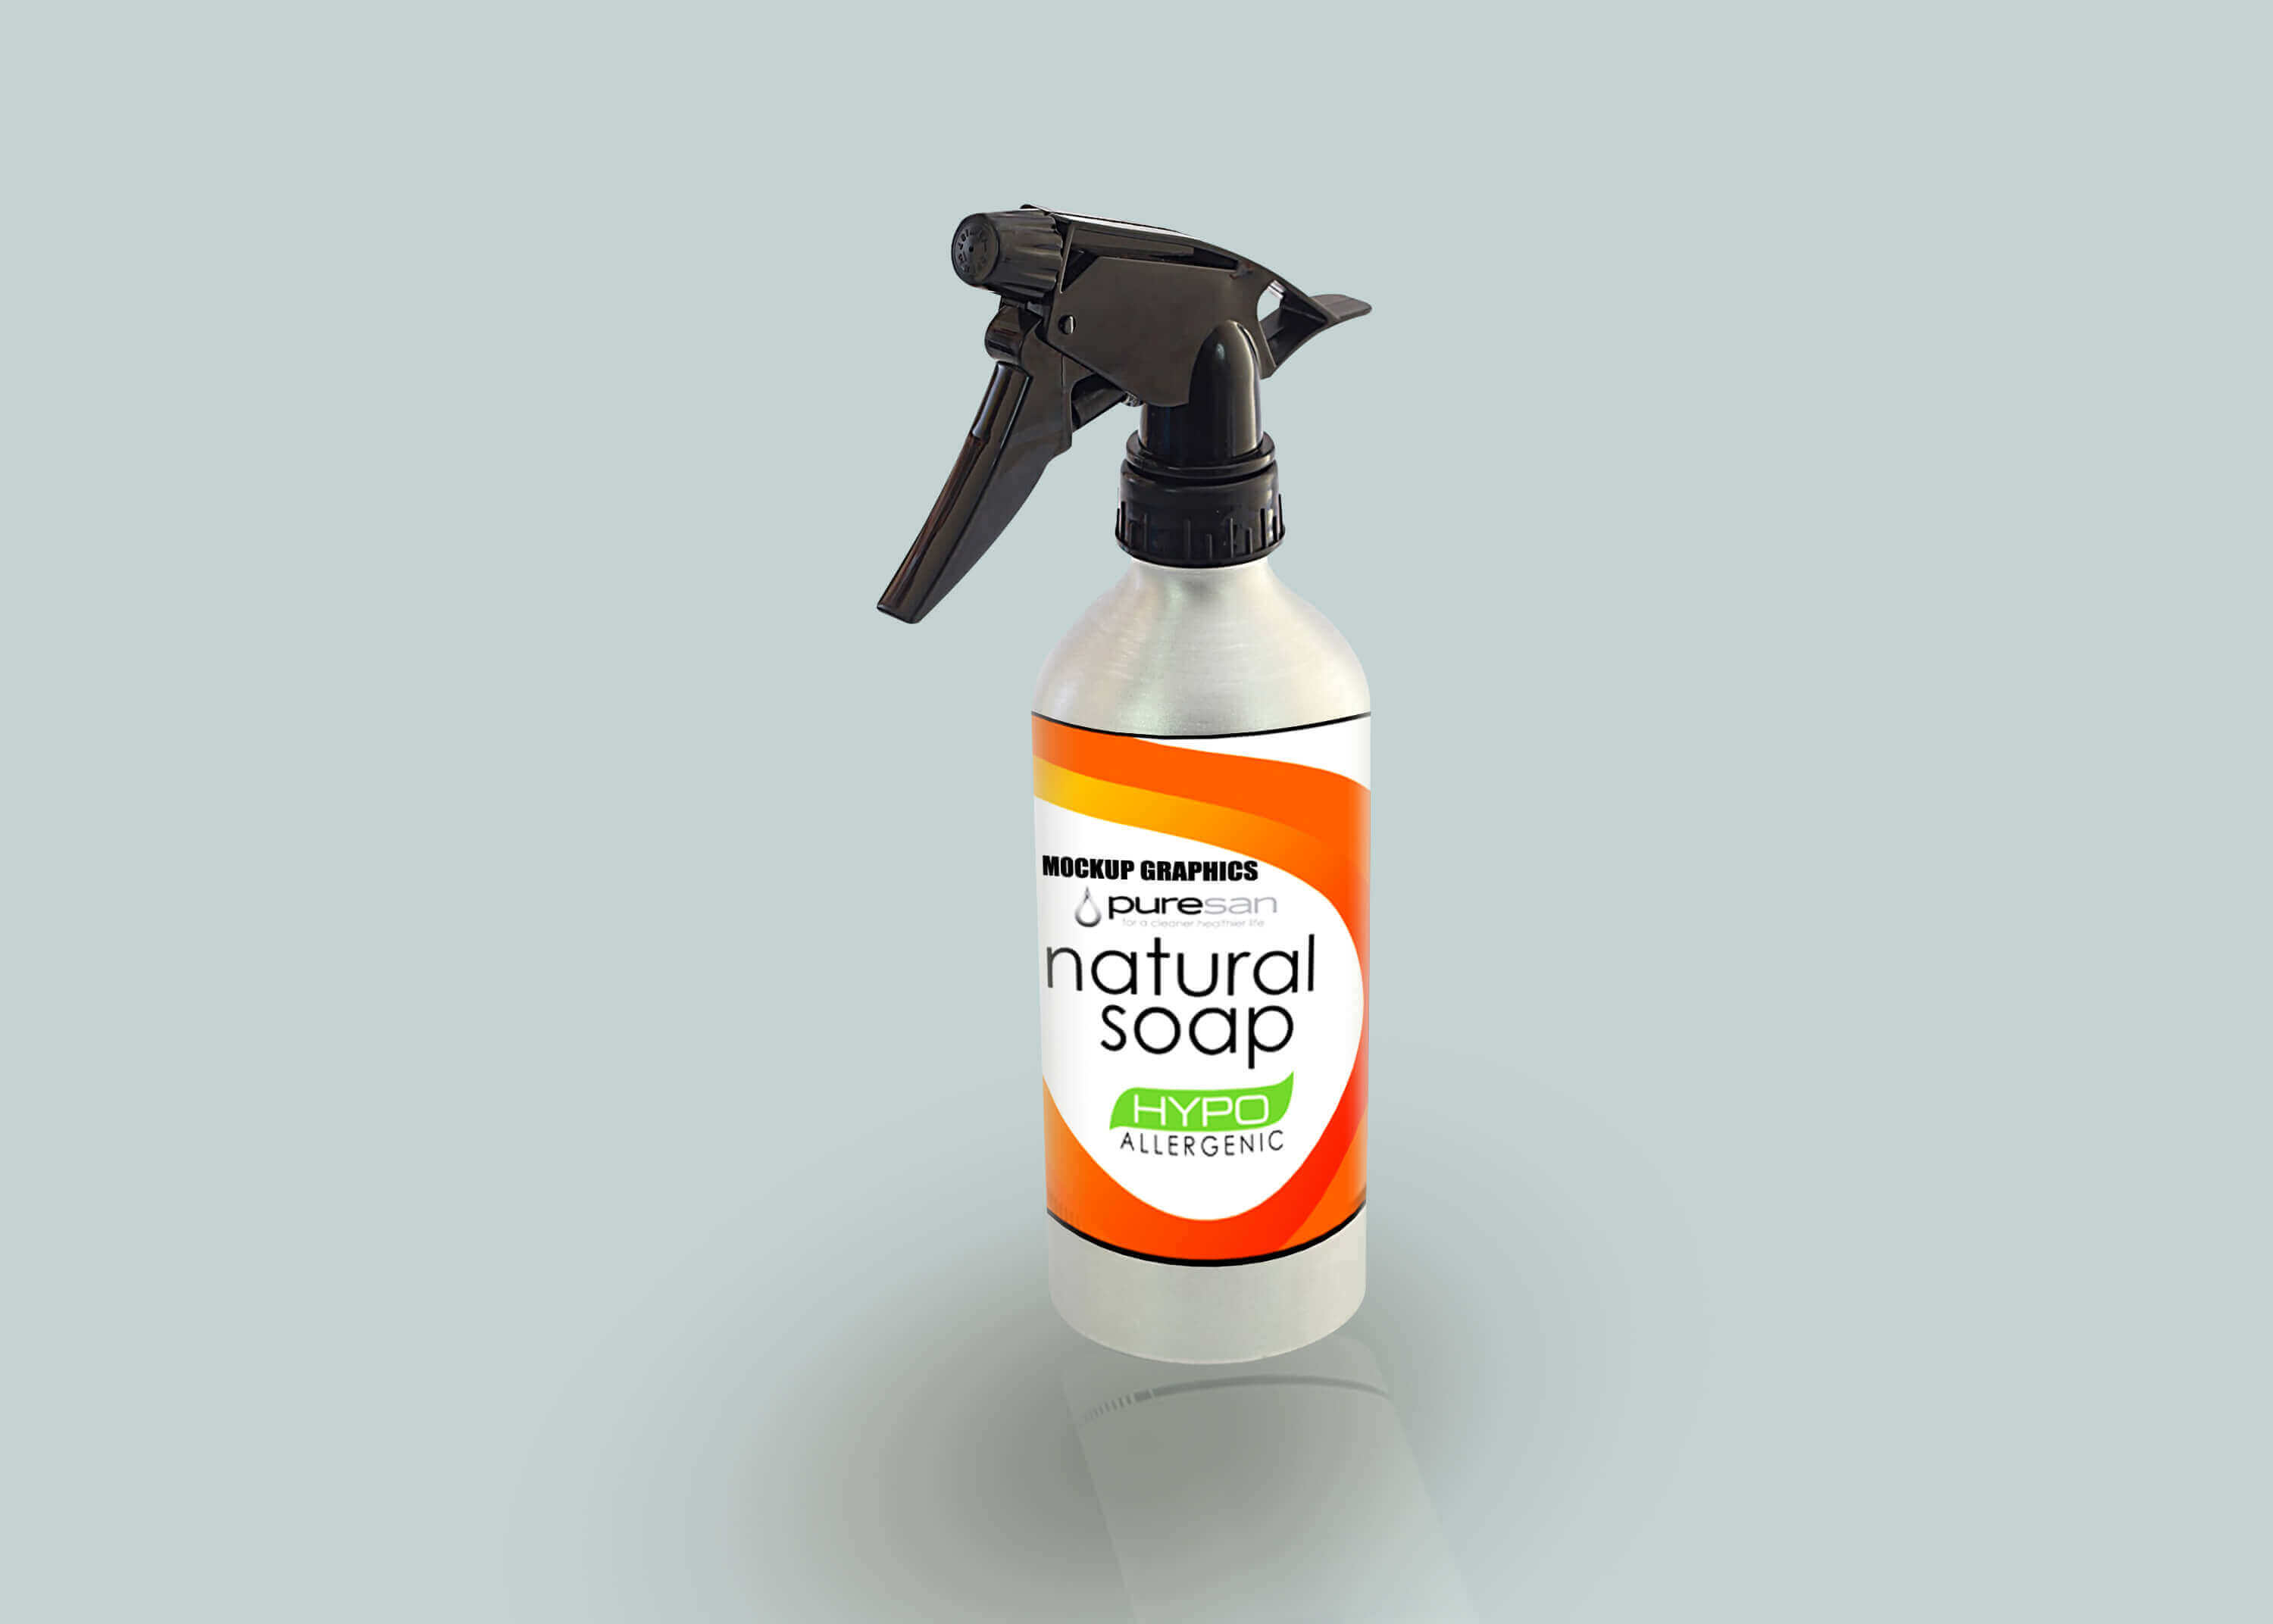 spray trigger bottle mockup - www.mockupgraphics.com